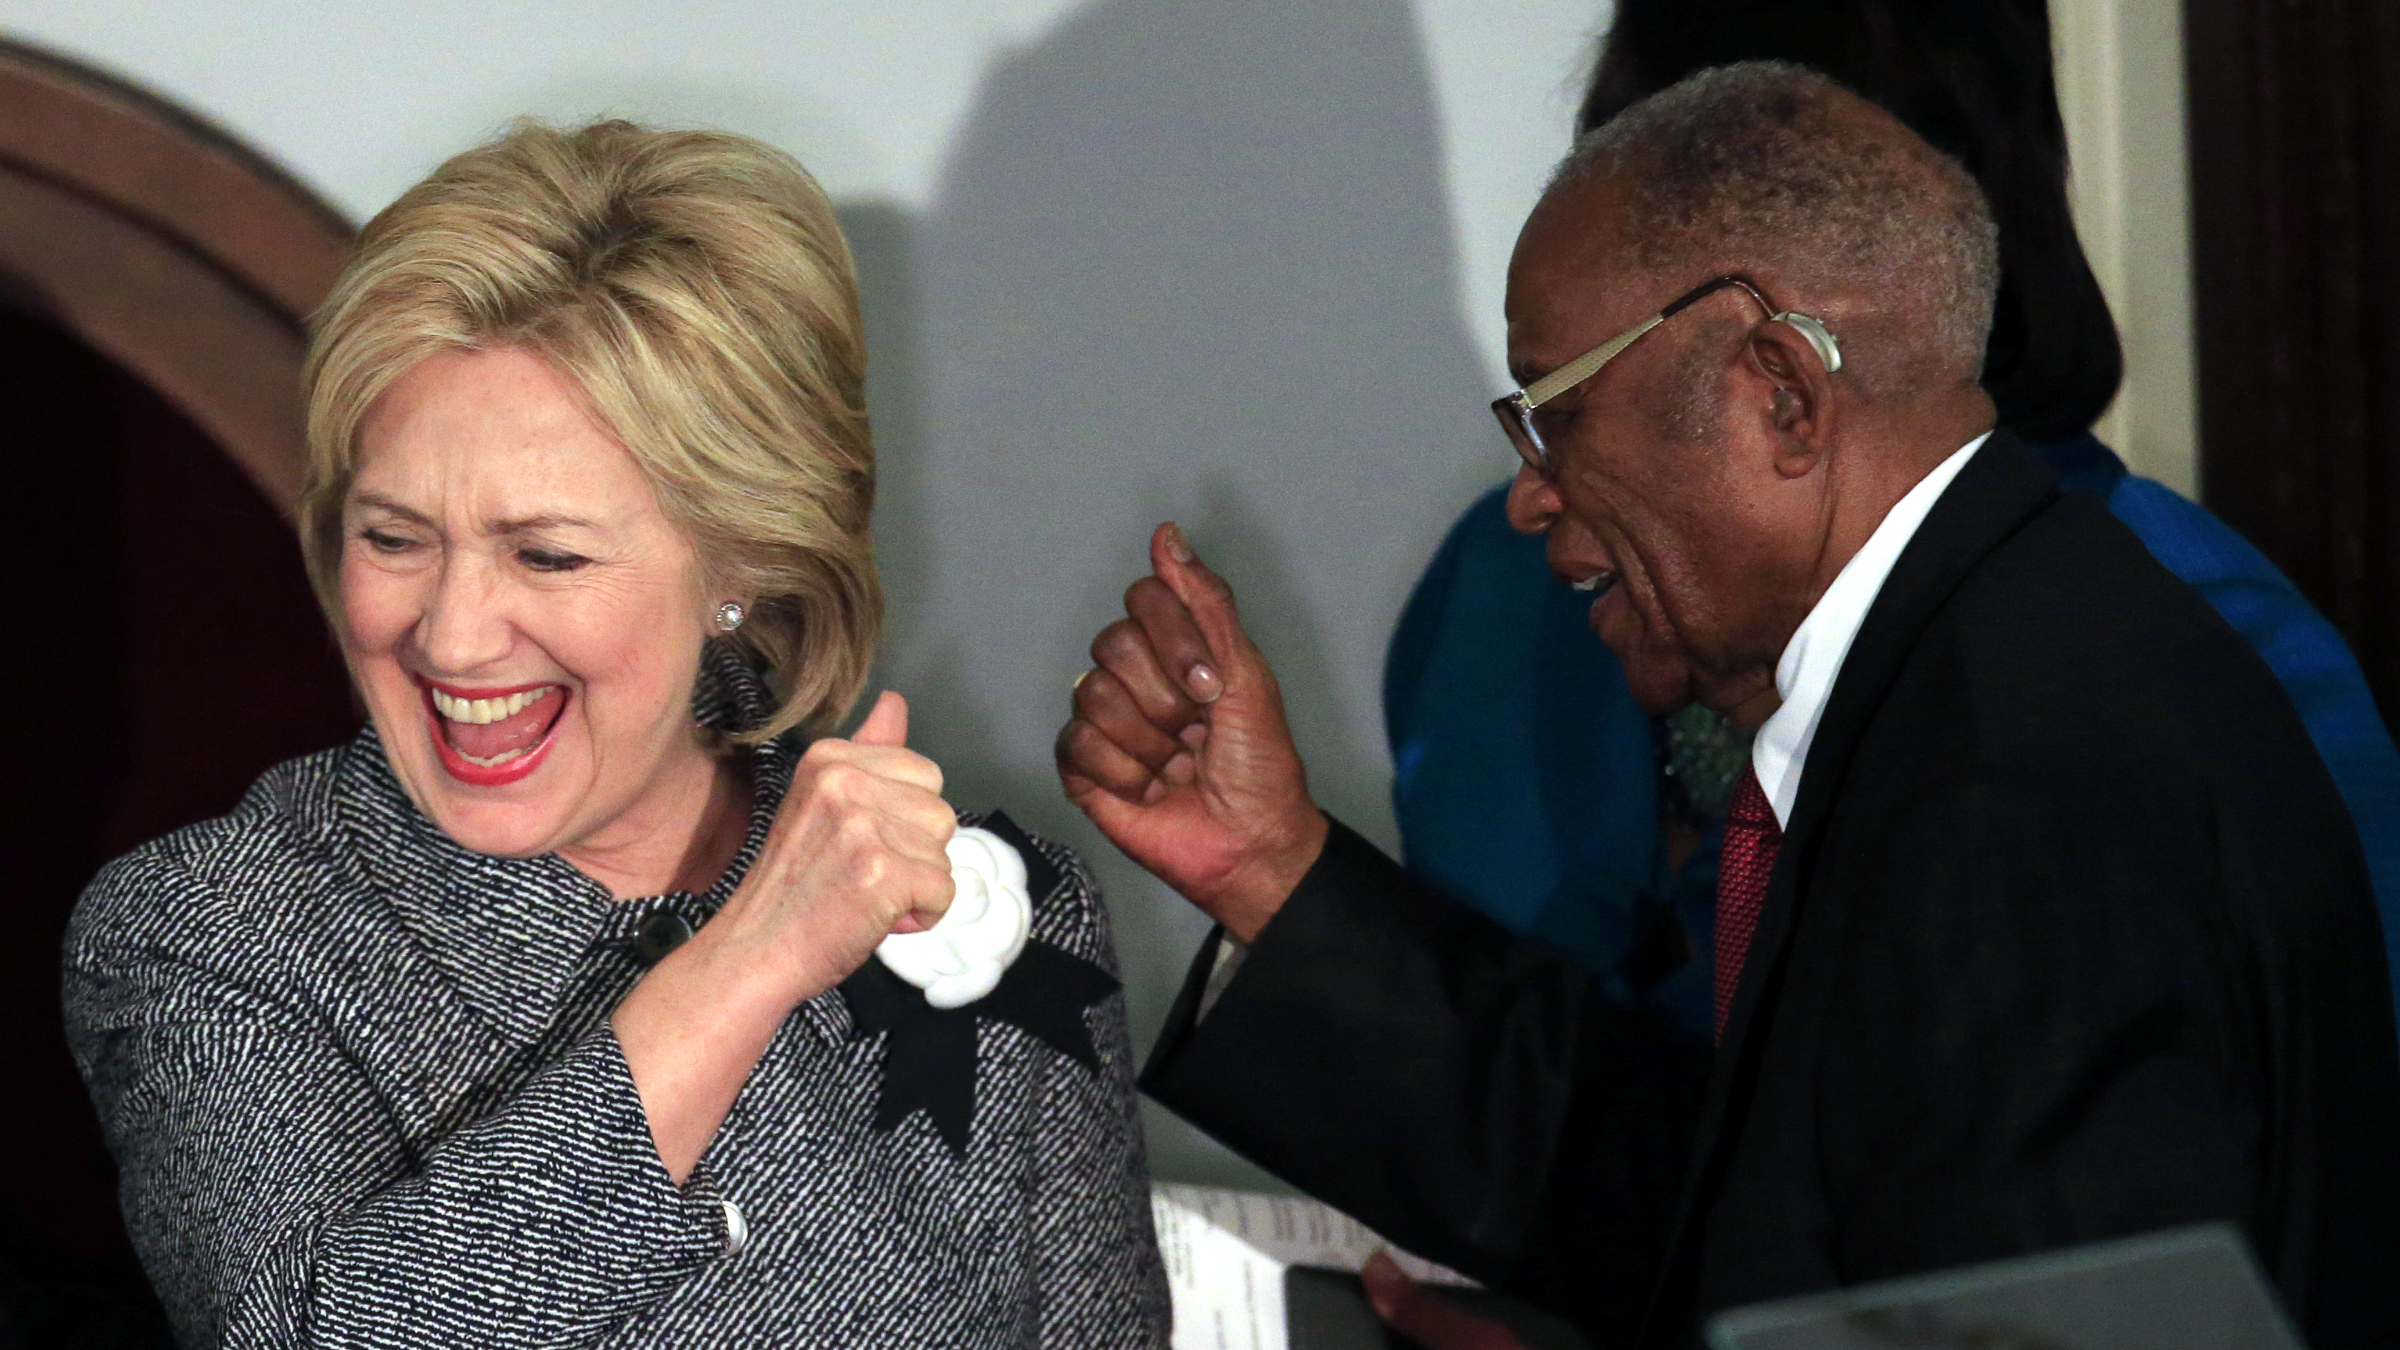 U.S. Democratic presidential candidate Hillary Clinton is greeted by Fred D. Gray, attorney for the late civil rights icon Rosa Parks, at the Dexter Avenue Baptist church during the National Bar Association's 60th anniversary of the Montgomery Bus Boycott in Montgomery, Alabama December 1, 2015.